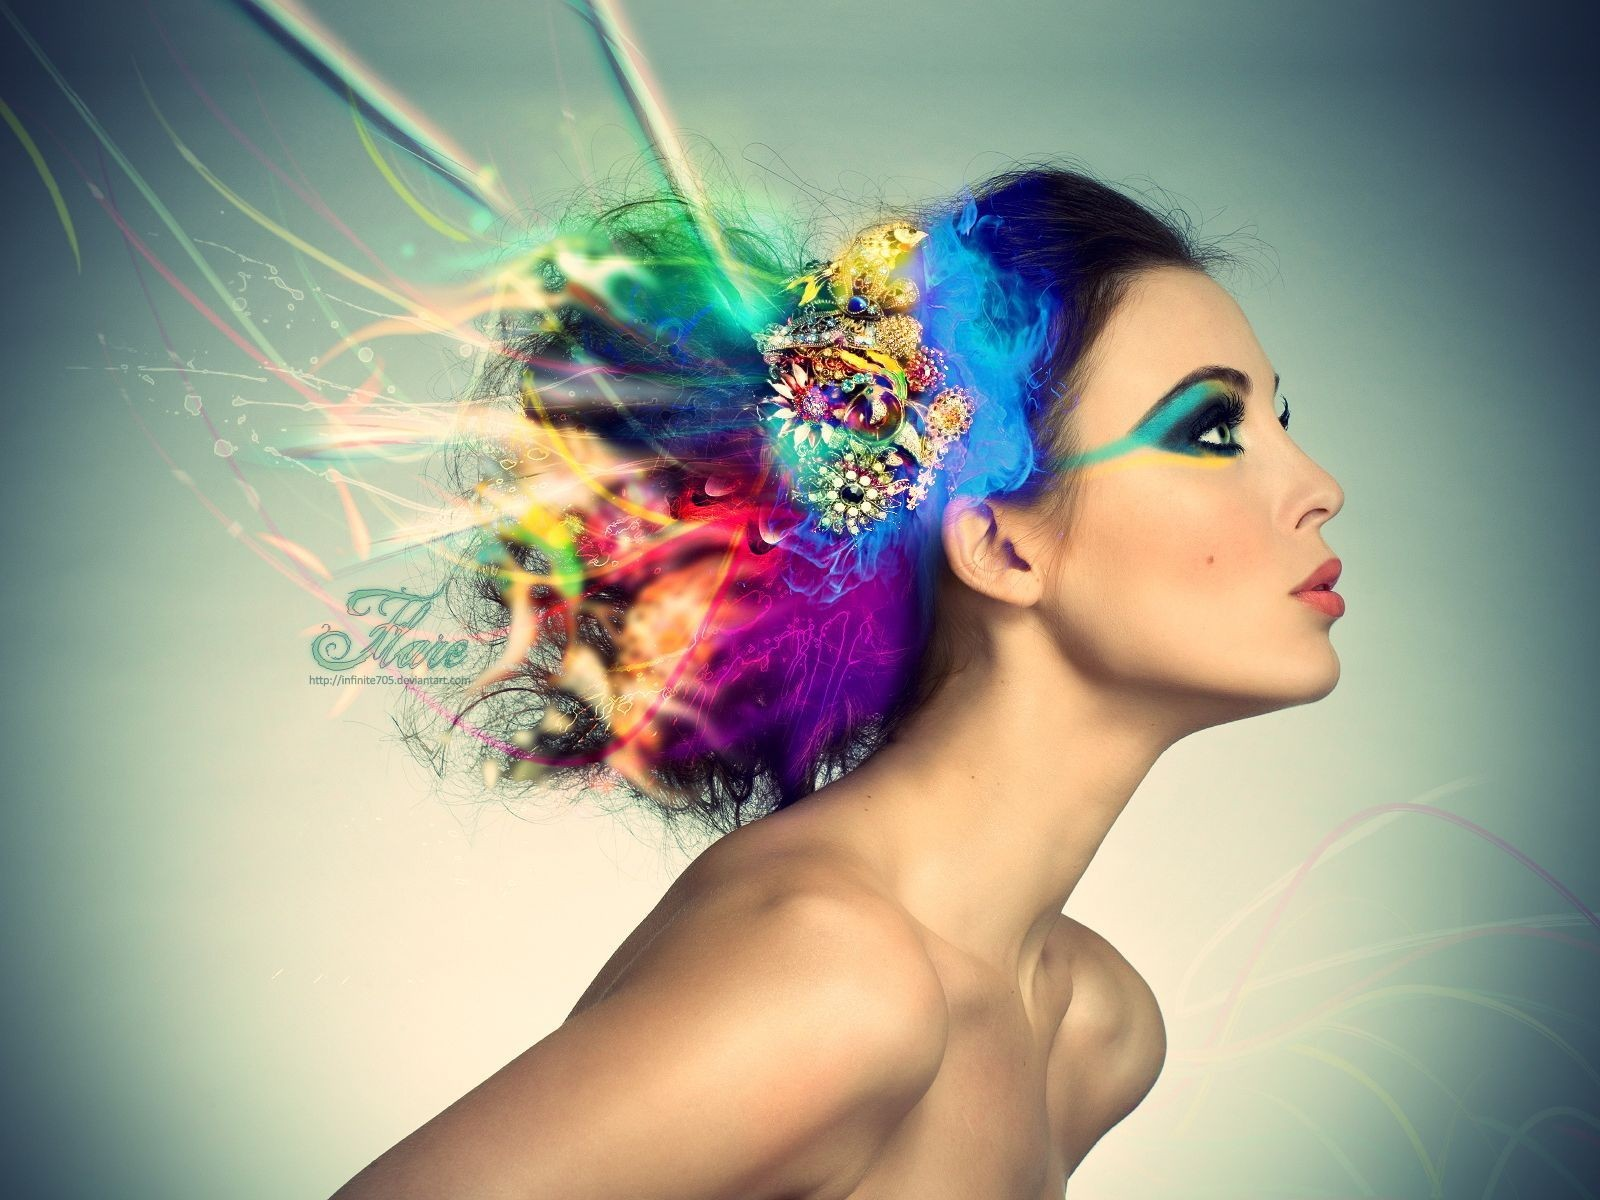 ws_Model_with_colorful_hair_1600x1200